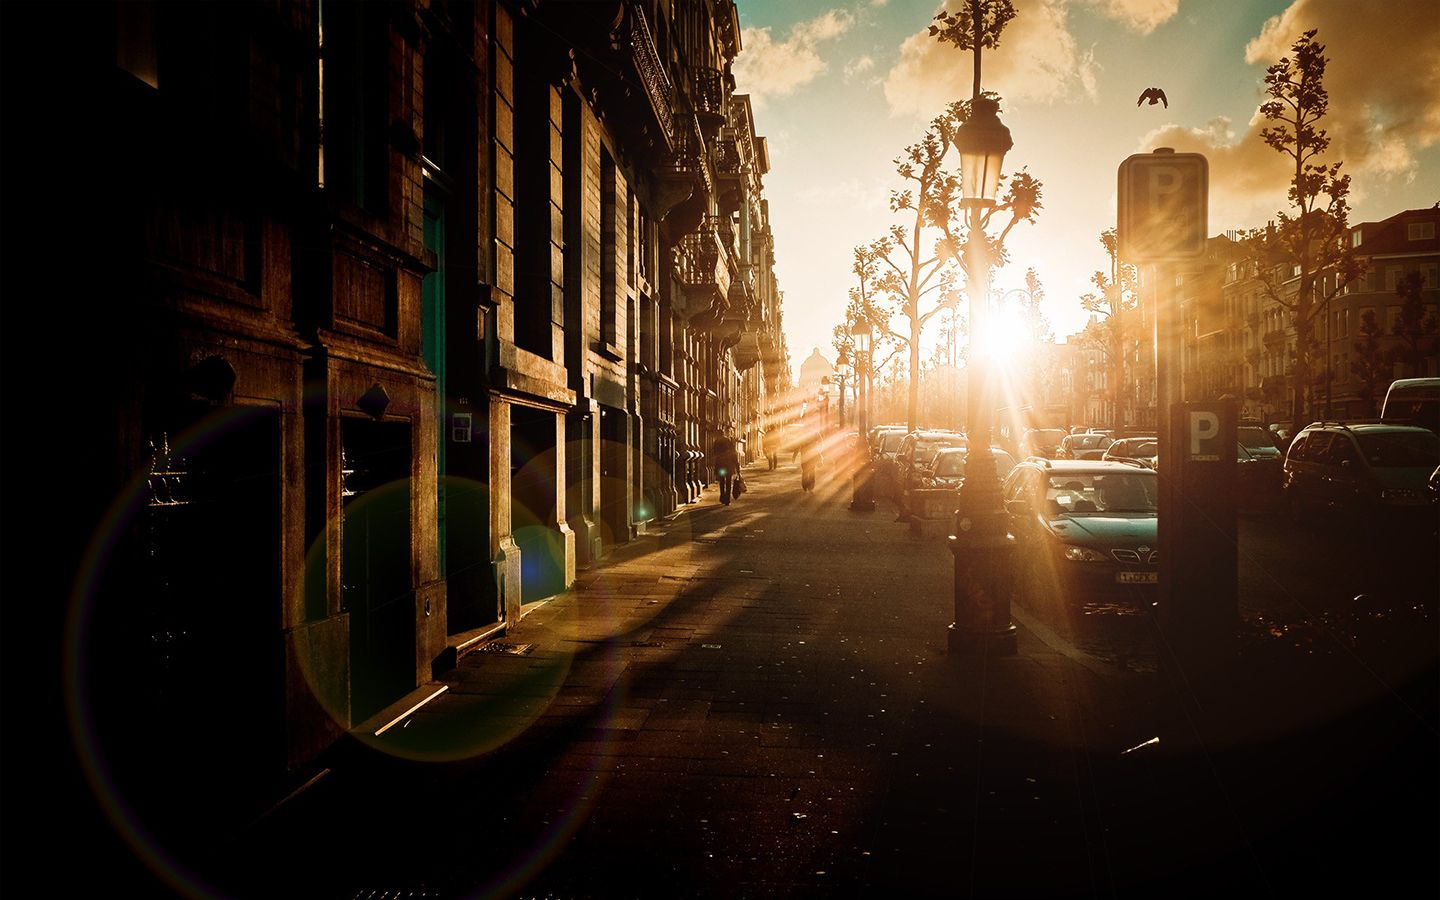 Pics For Gt Urban Street Backgrounds Hd With Images Street